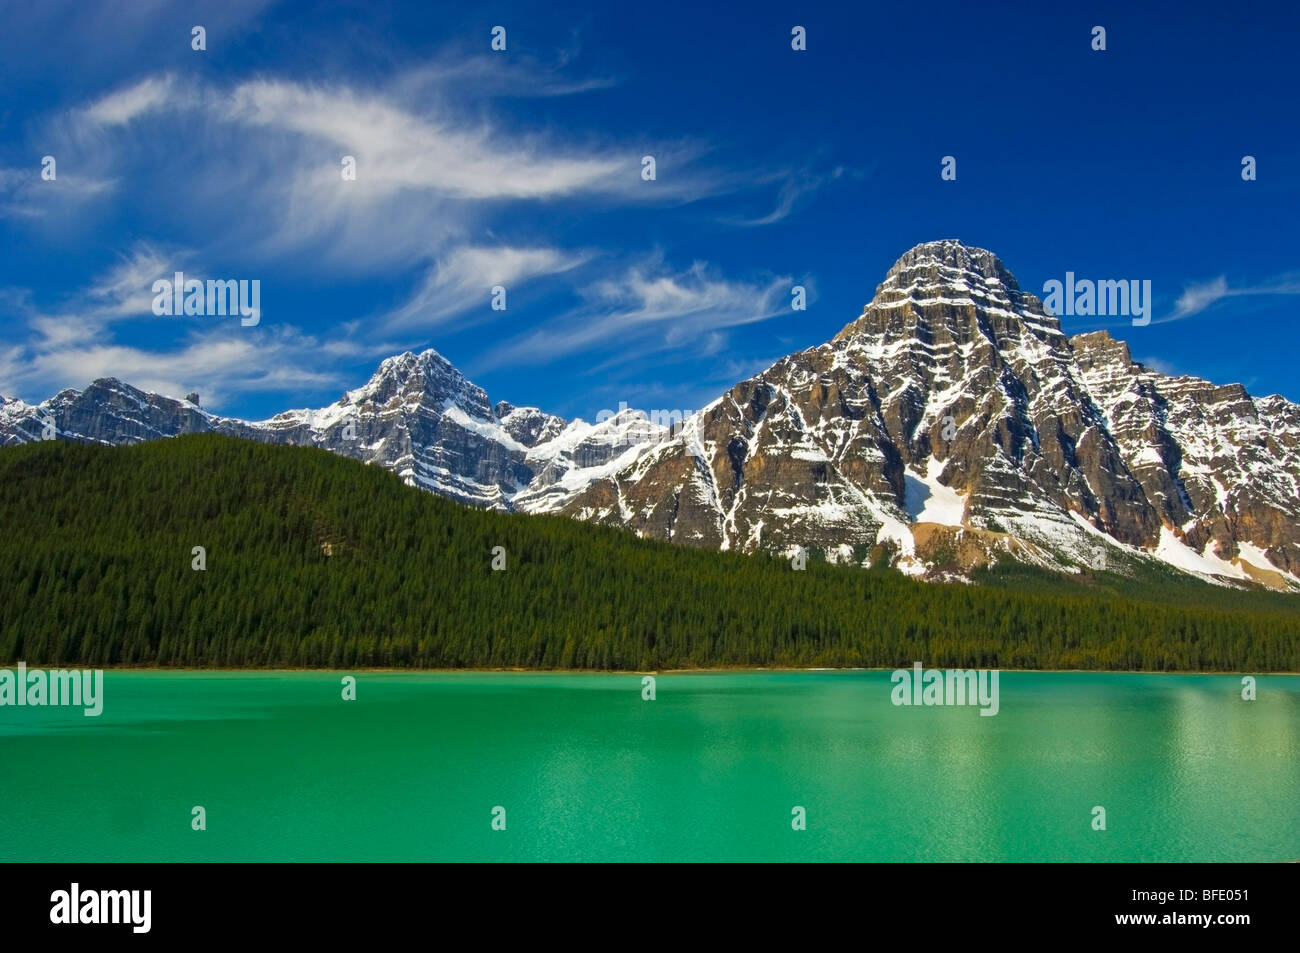 Mount Chephren and Lower Waterfowl Lake in spring, Banff National Park, Alberta, Canada - Stock Image